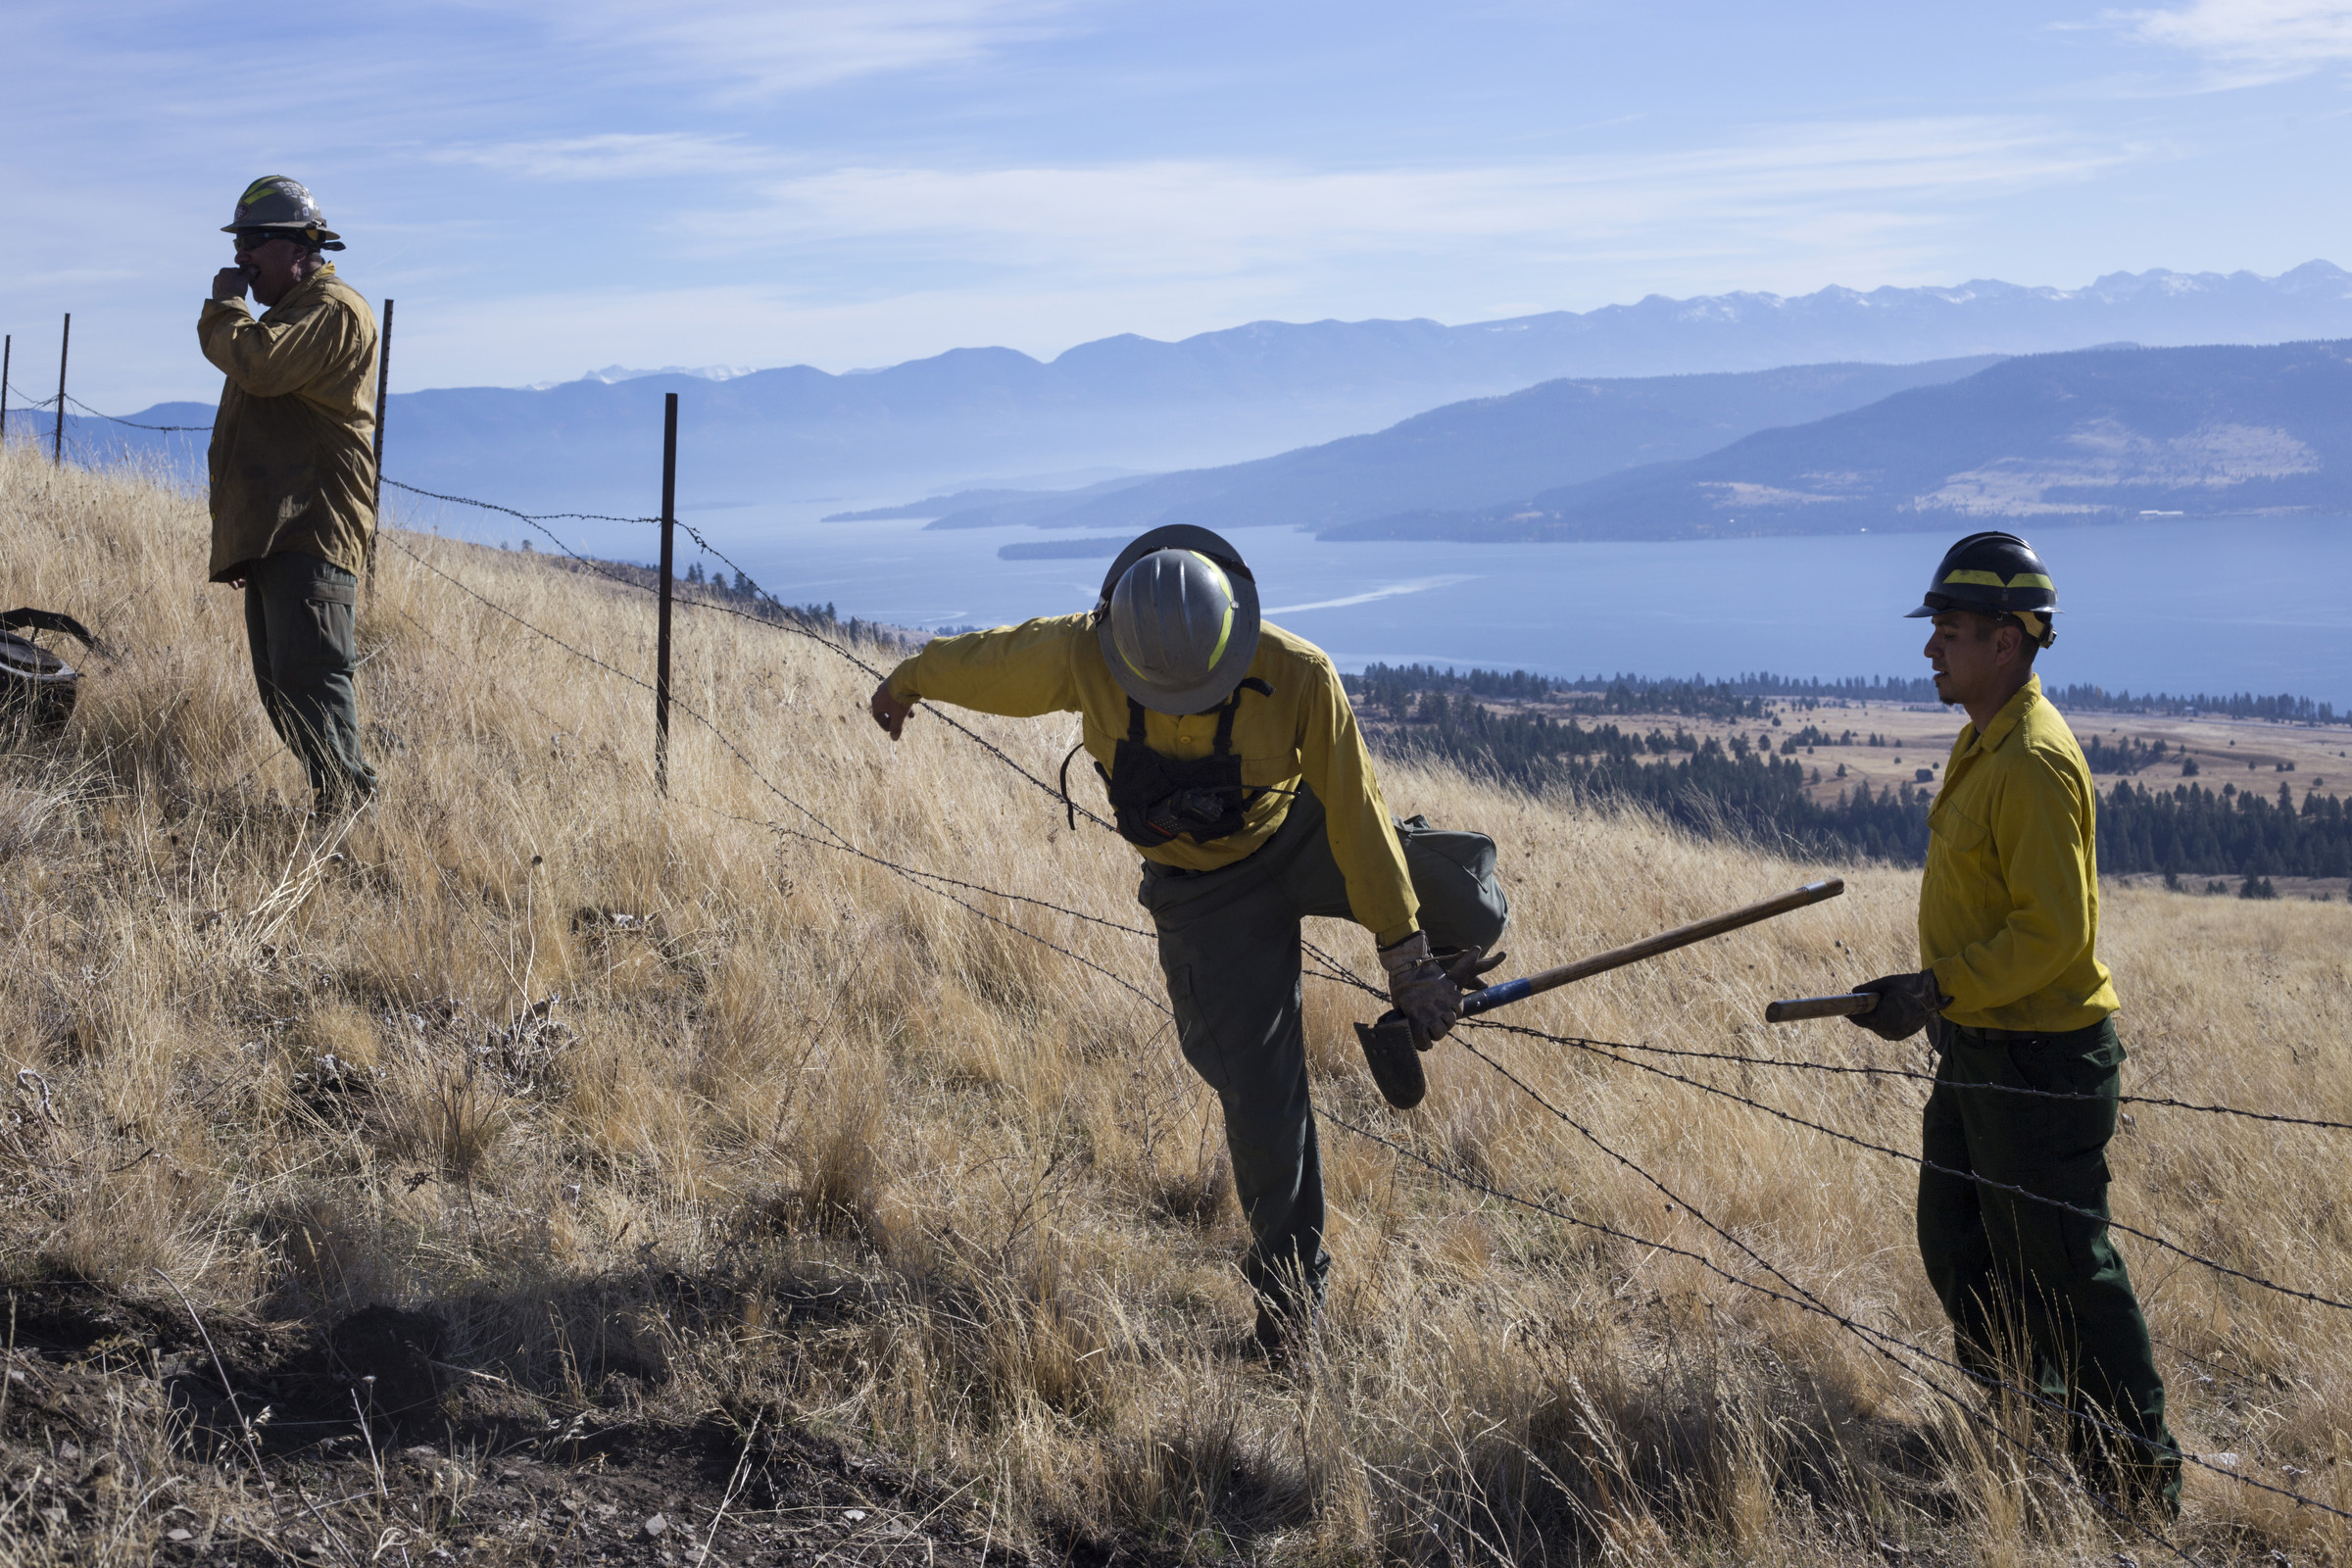 Members of the Confederated Salish and Kootenai Tribes Division of Fire cross over a barbed wire fence after preparing a barrier for a prescribed burn just along a ridge line outside of Elmo, Montana, on Tuesday, October 24, 2017. (Photo by Brittany Greeson)